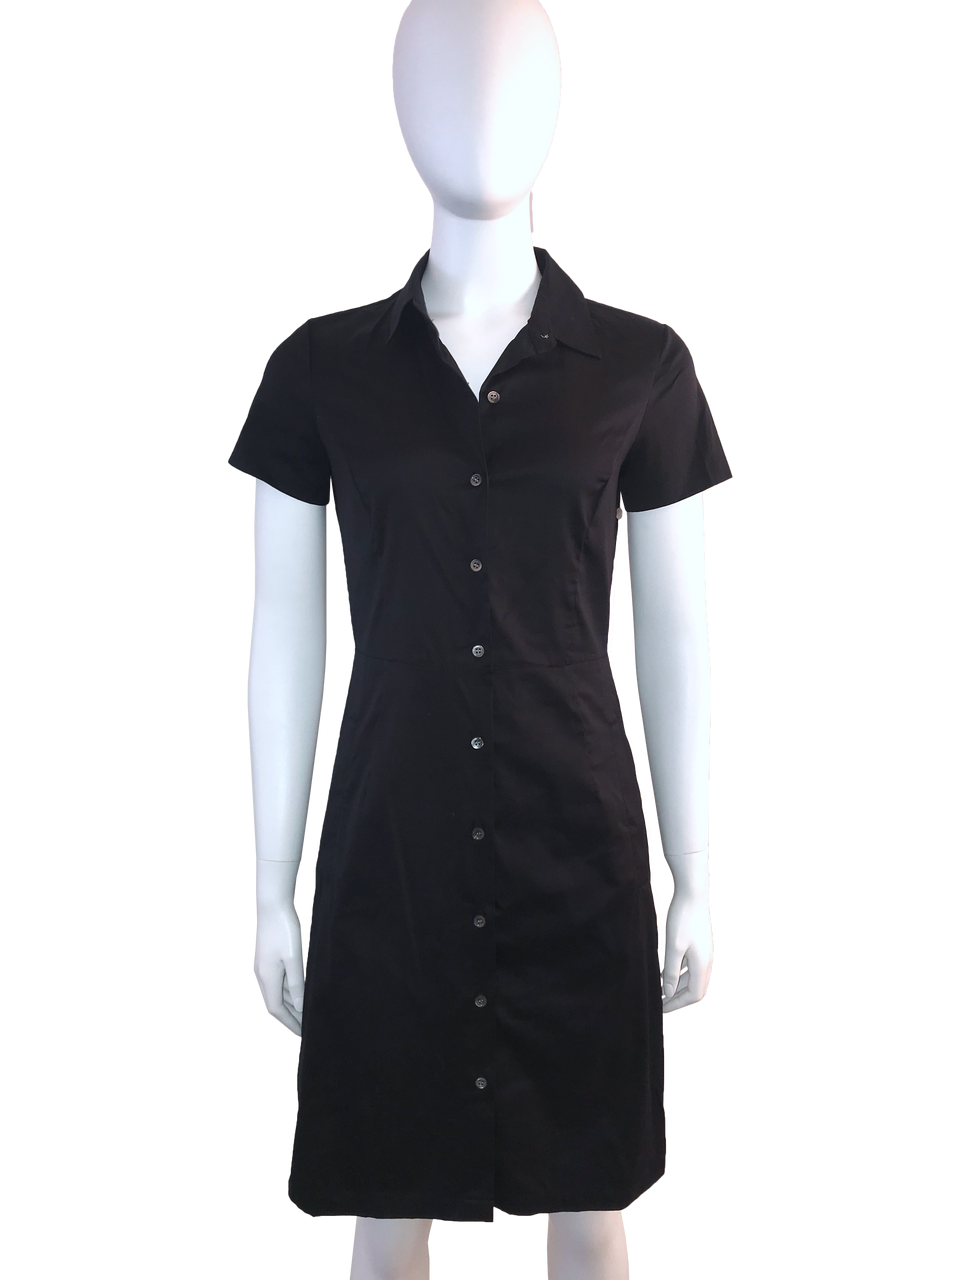 Theory Black Short Sleeve Shirt Dress